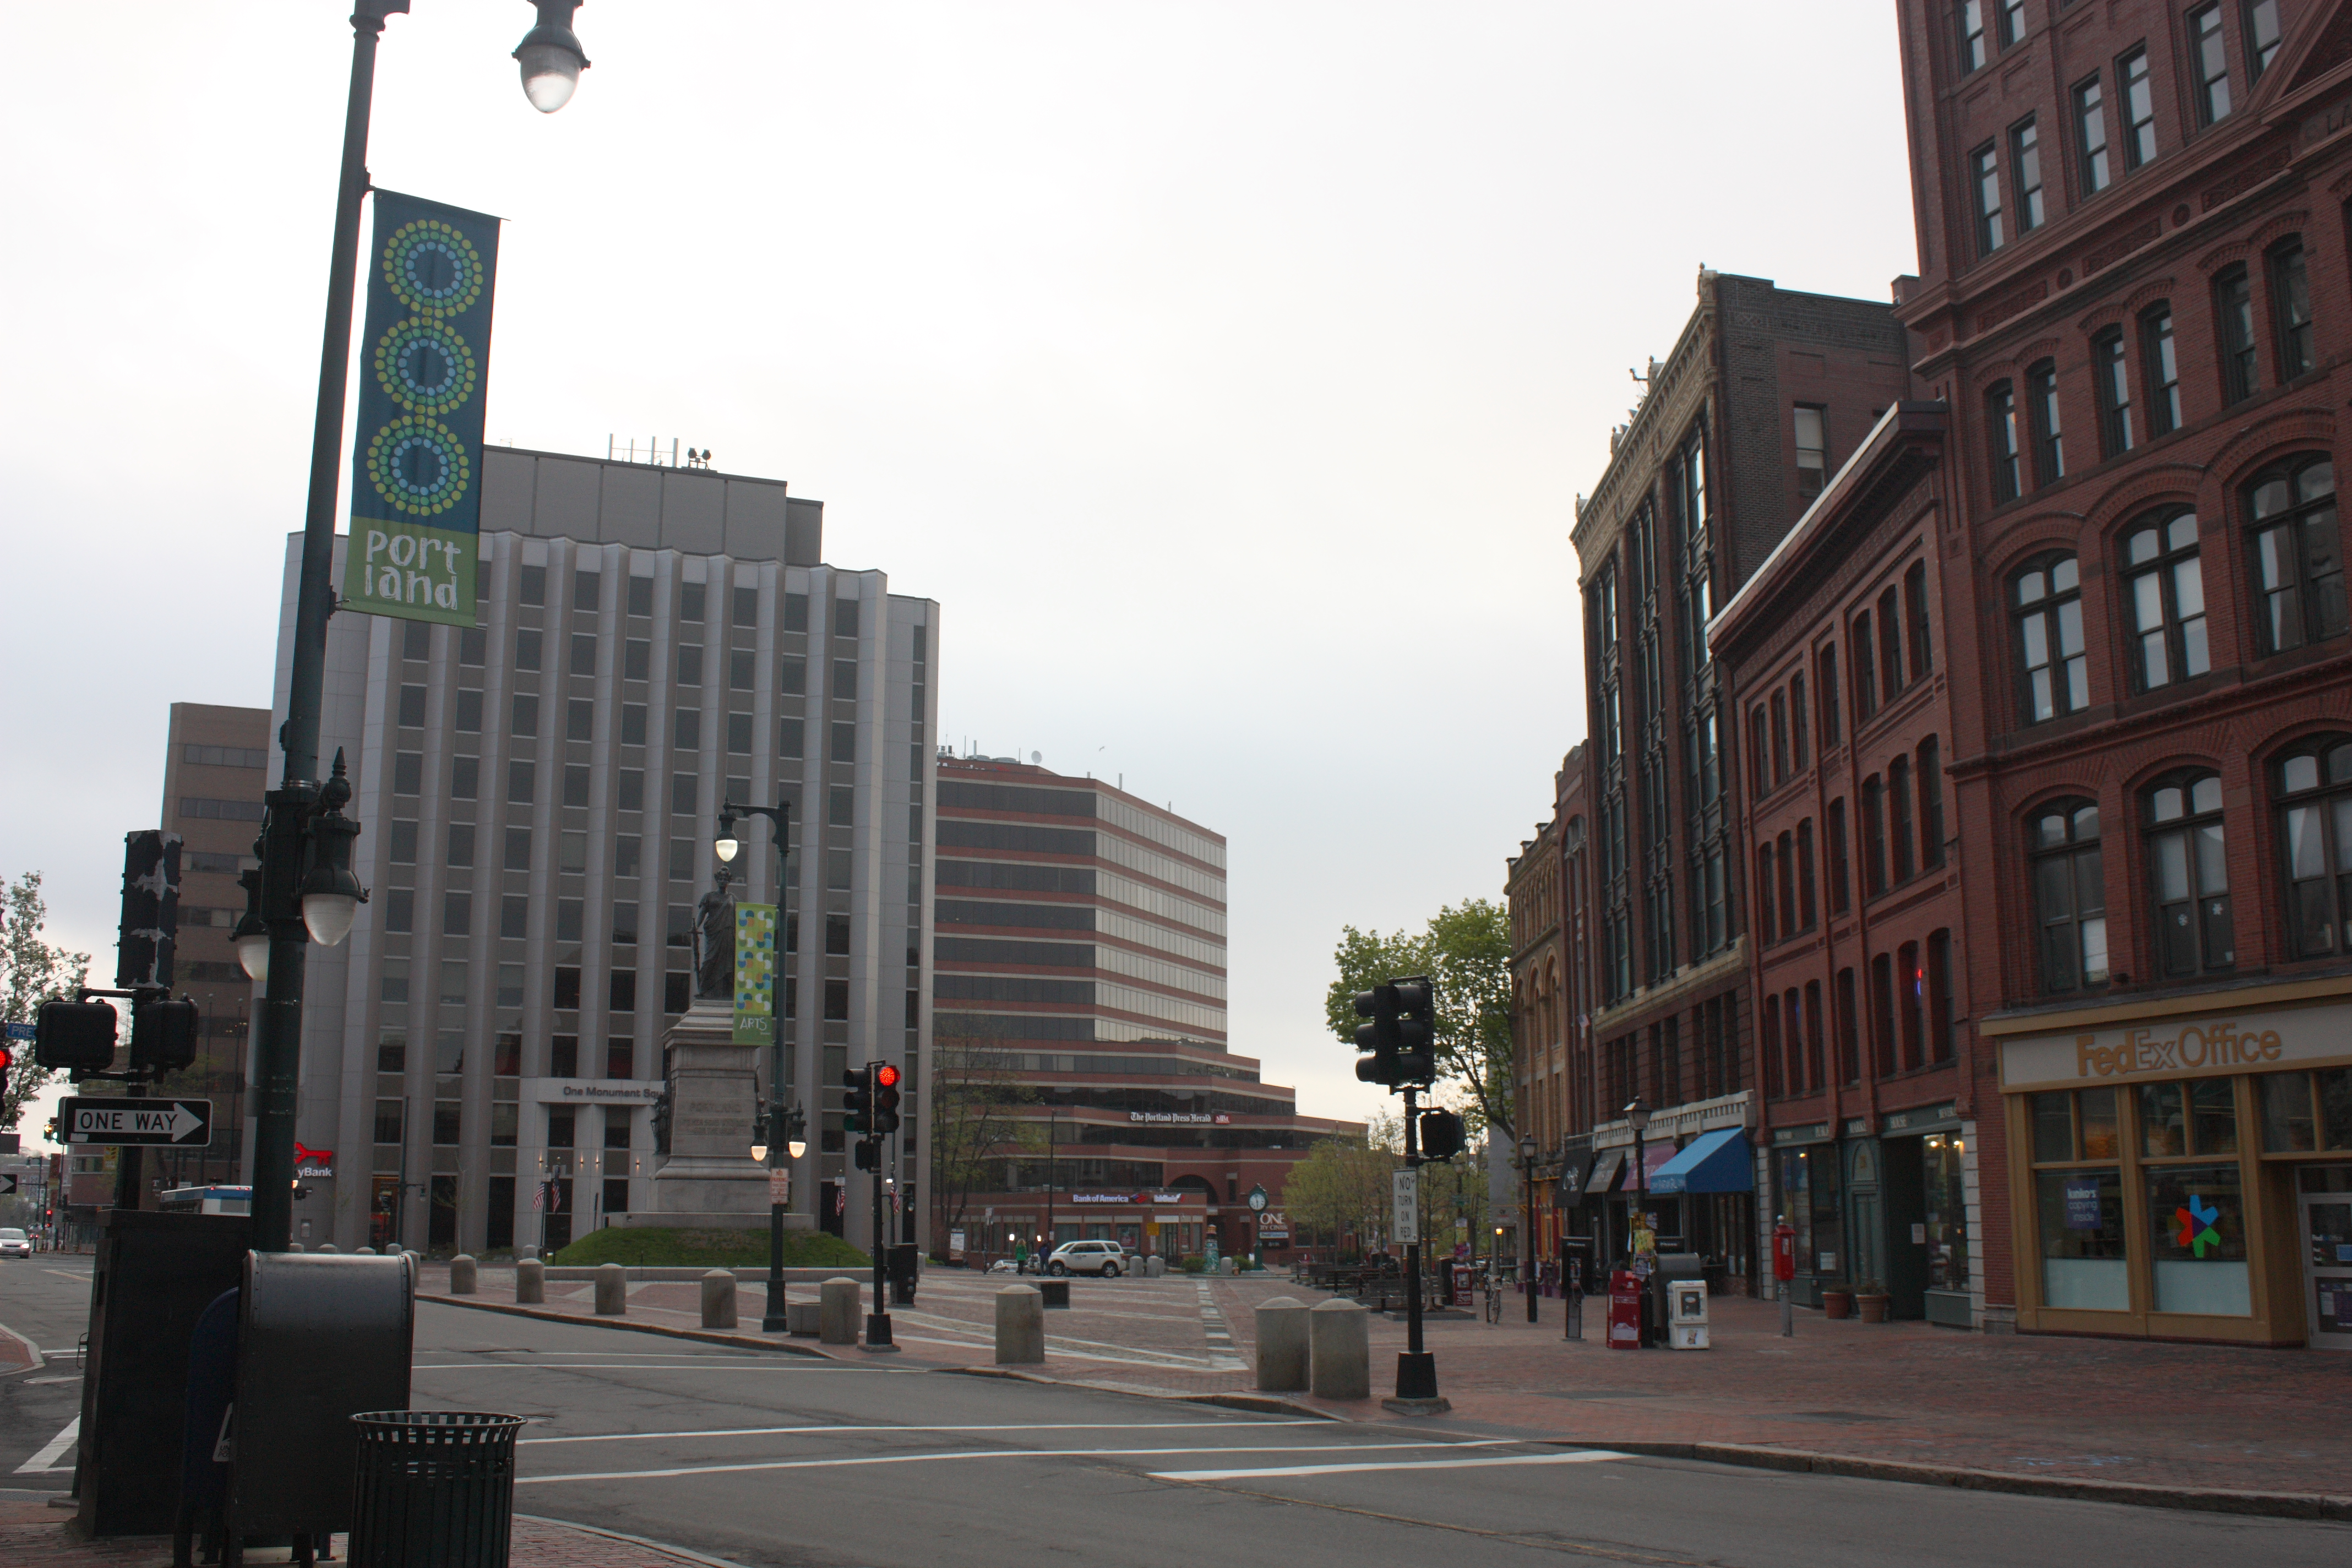 Monument square, May 2014.